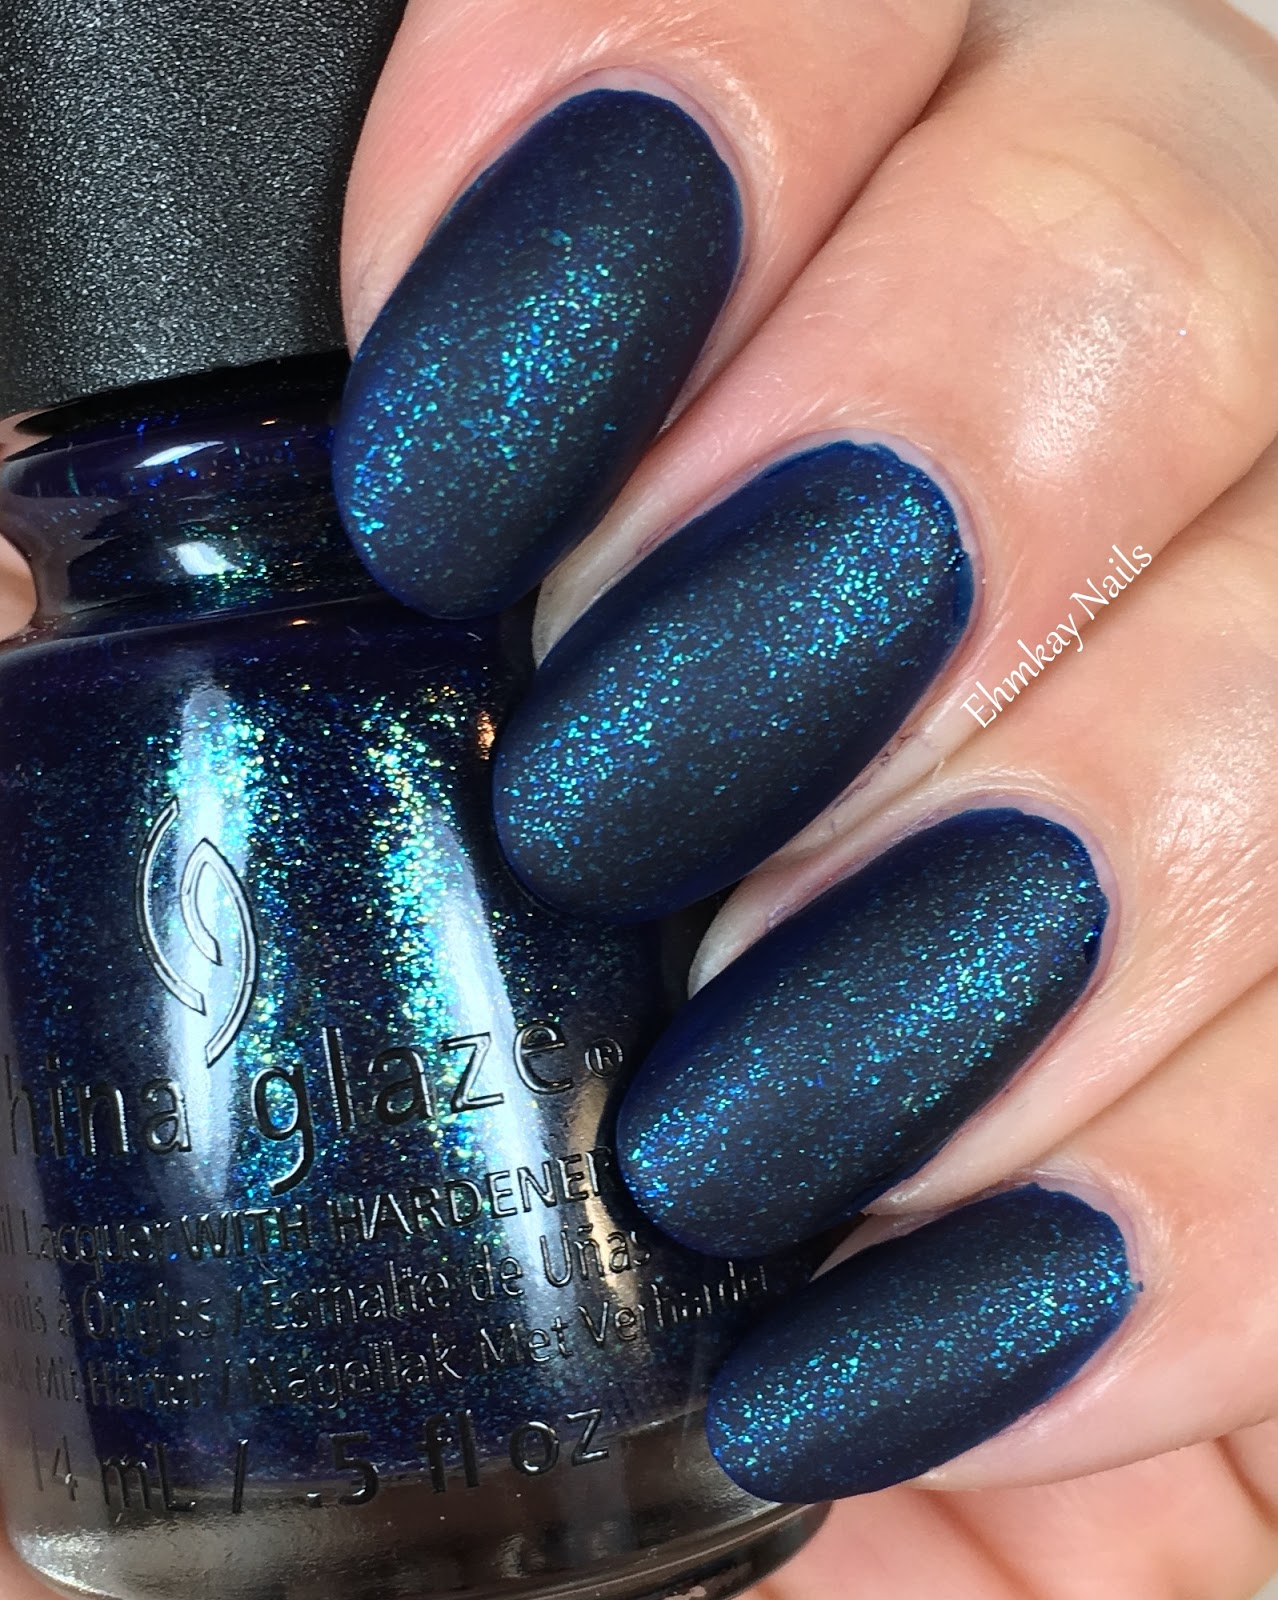 Ehmkay Nails China Glaze Rebel Collection For Fall 2016 Swatches And Review